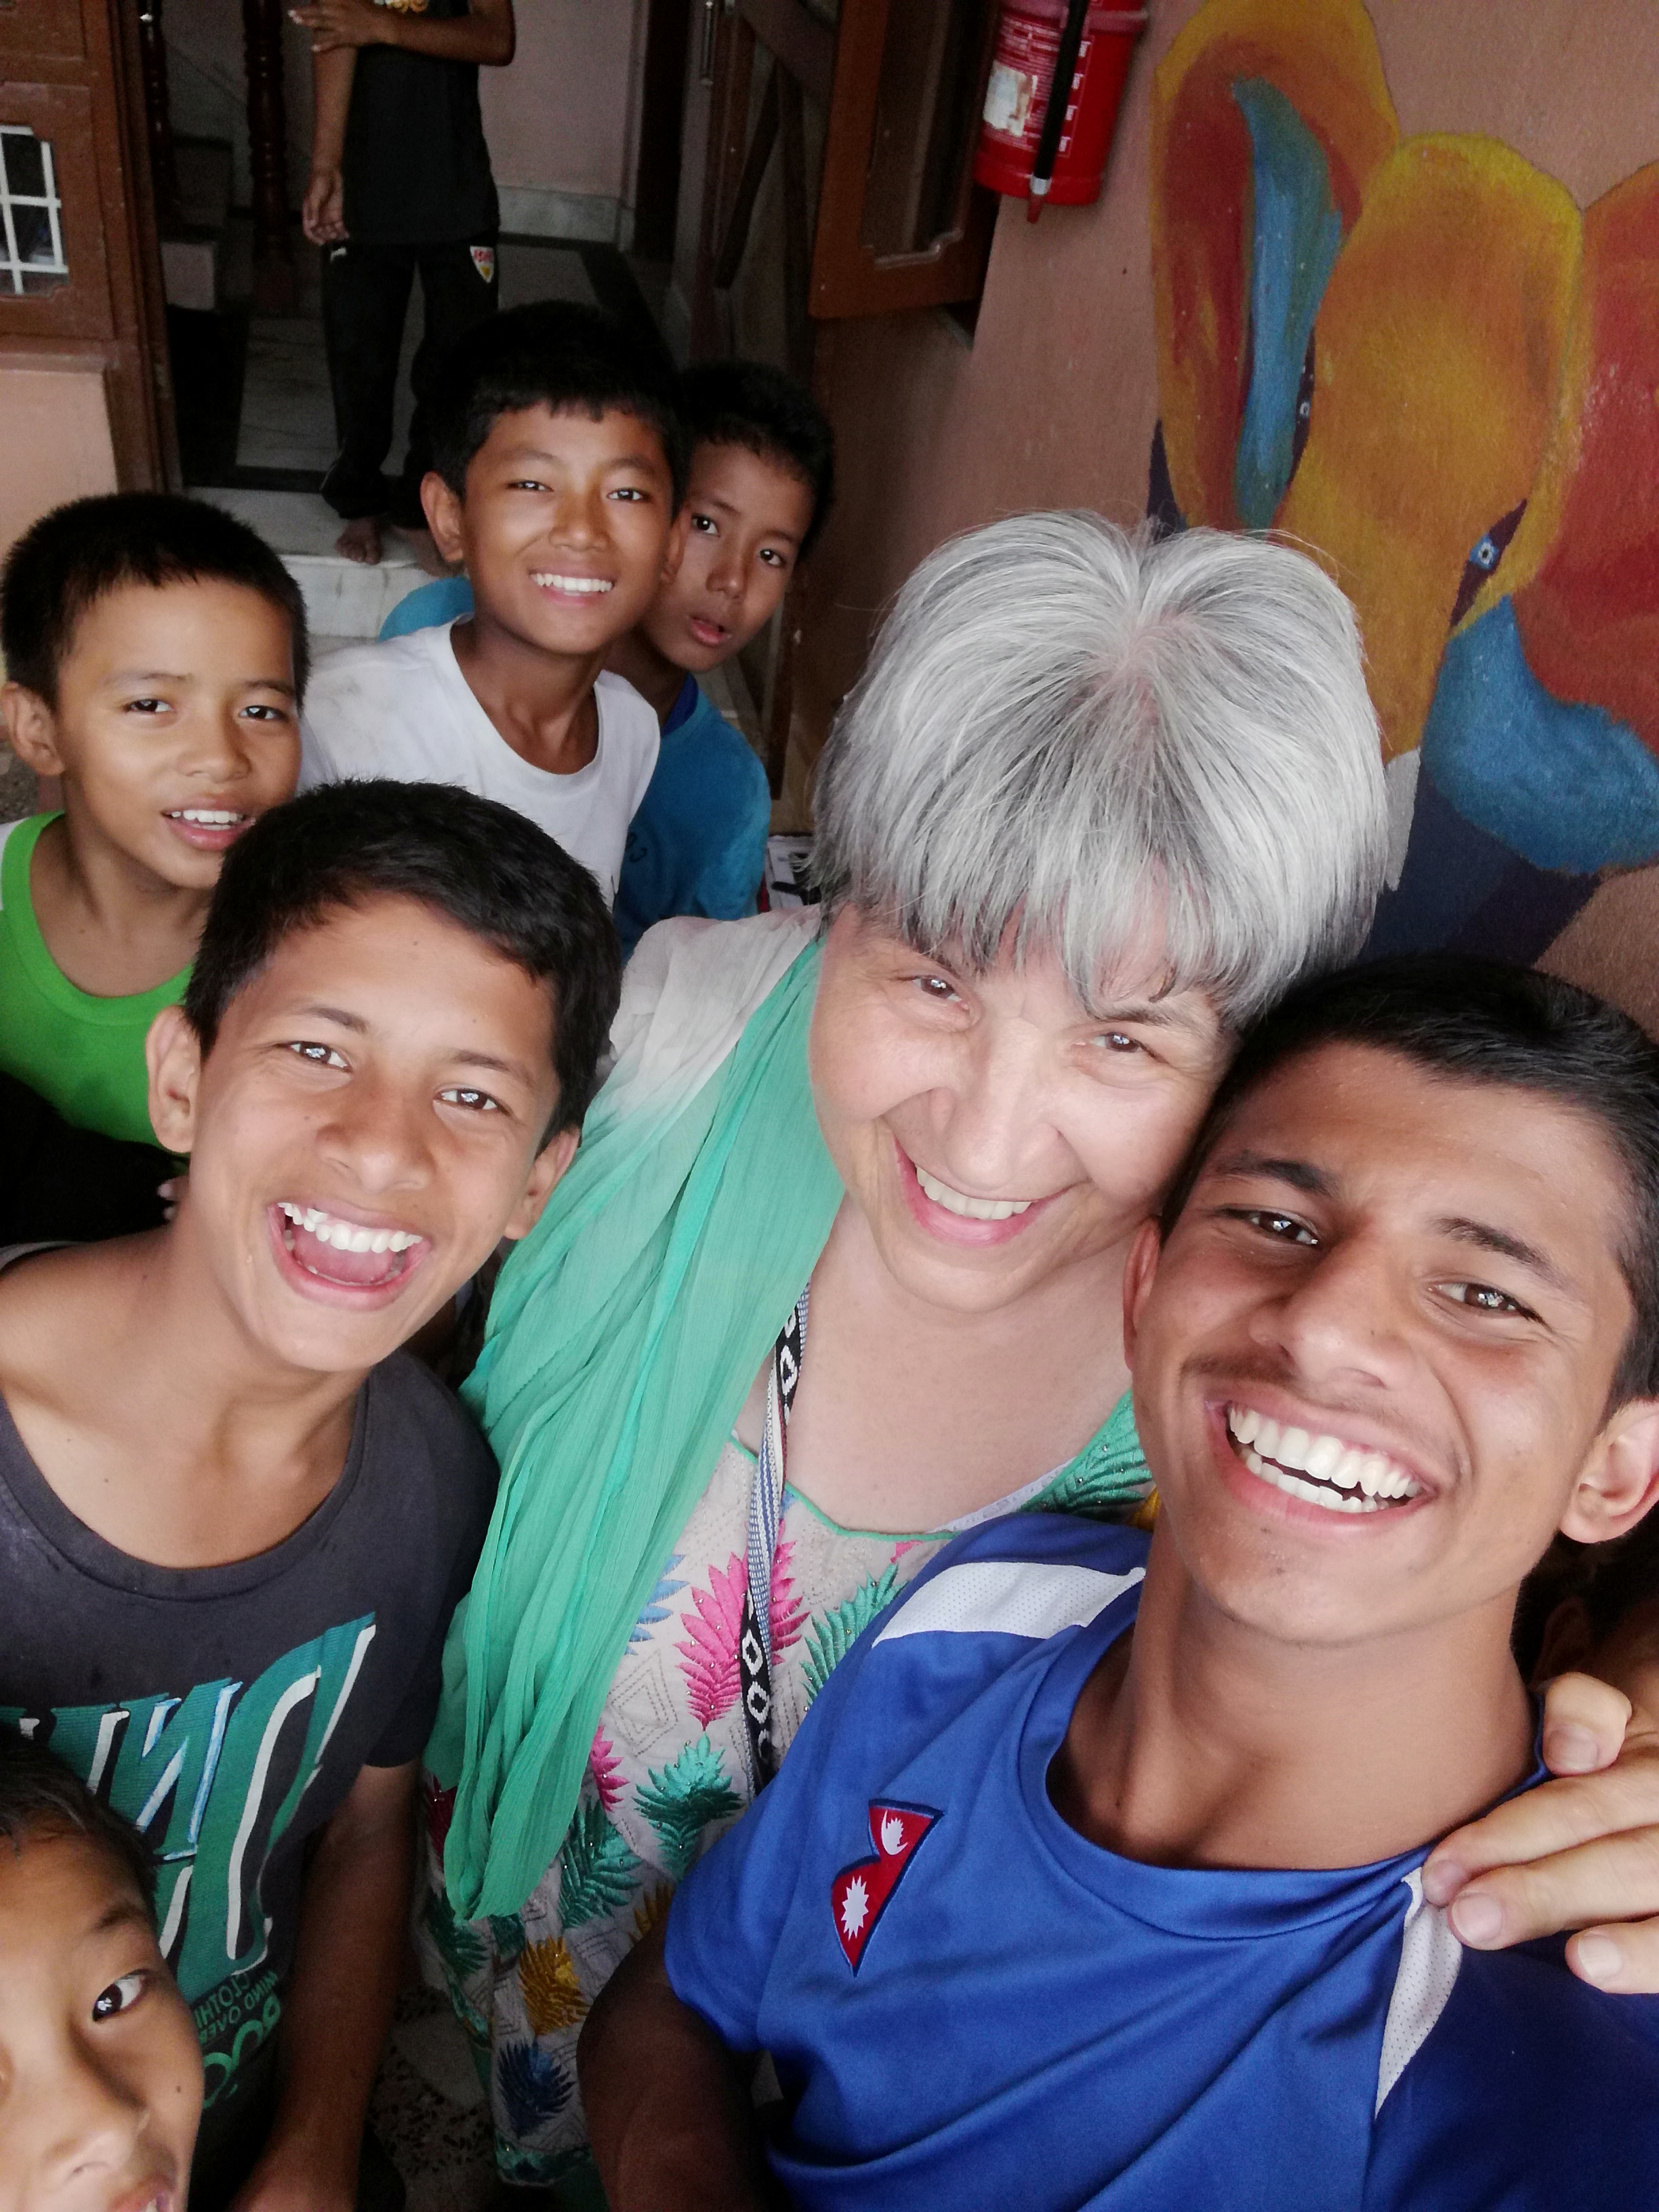 Ellen Dietrich takes a selfie with some of the children at her Home of Hope organization in Kathmandu, Nepal in 2019.